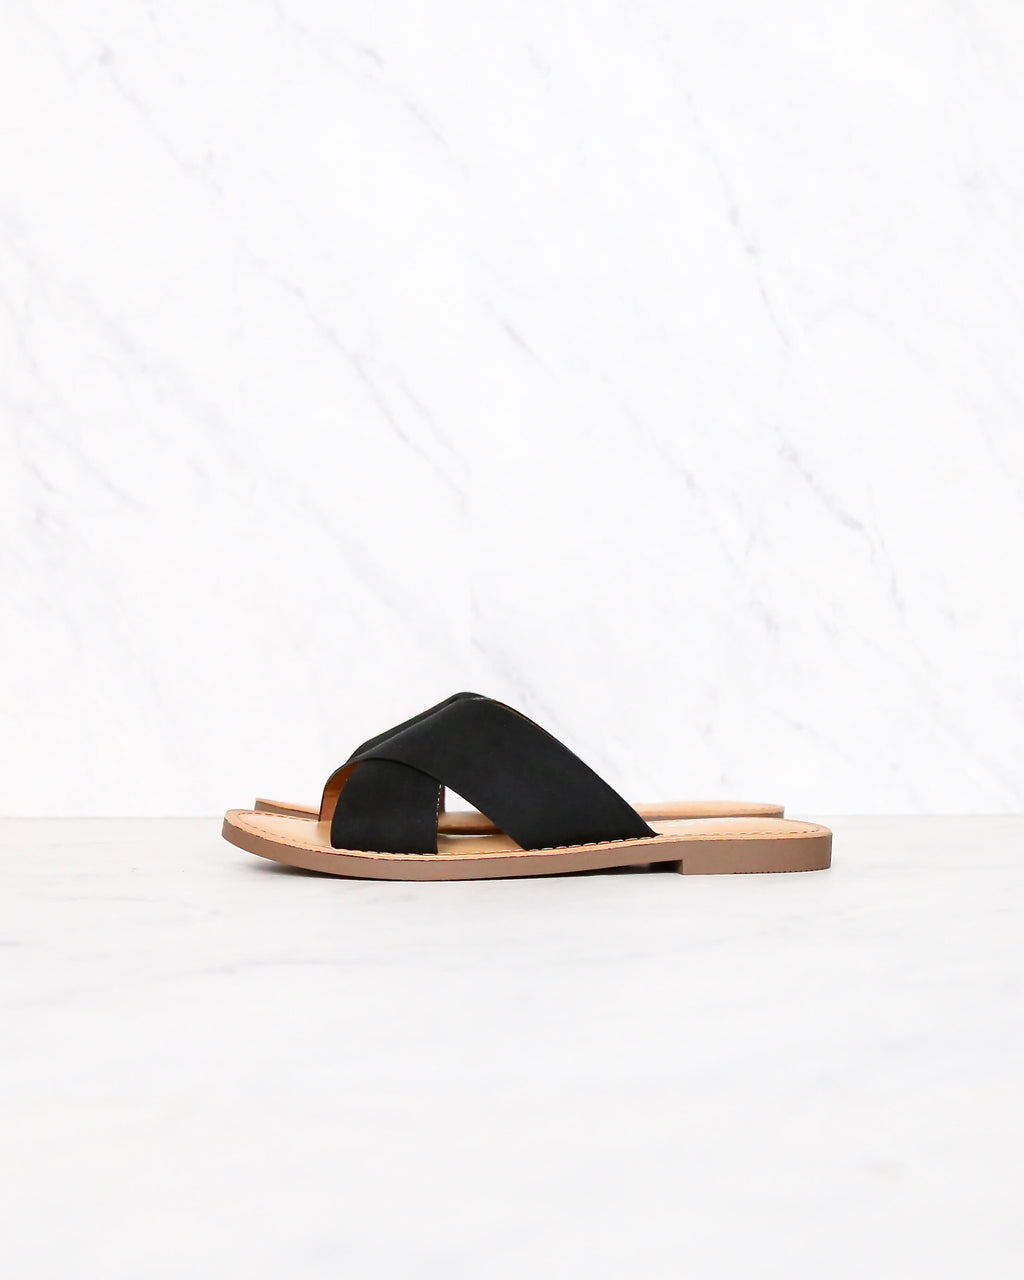 coco criss cross faux suede slip on flat sandals - black